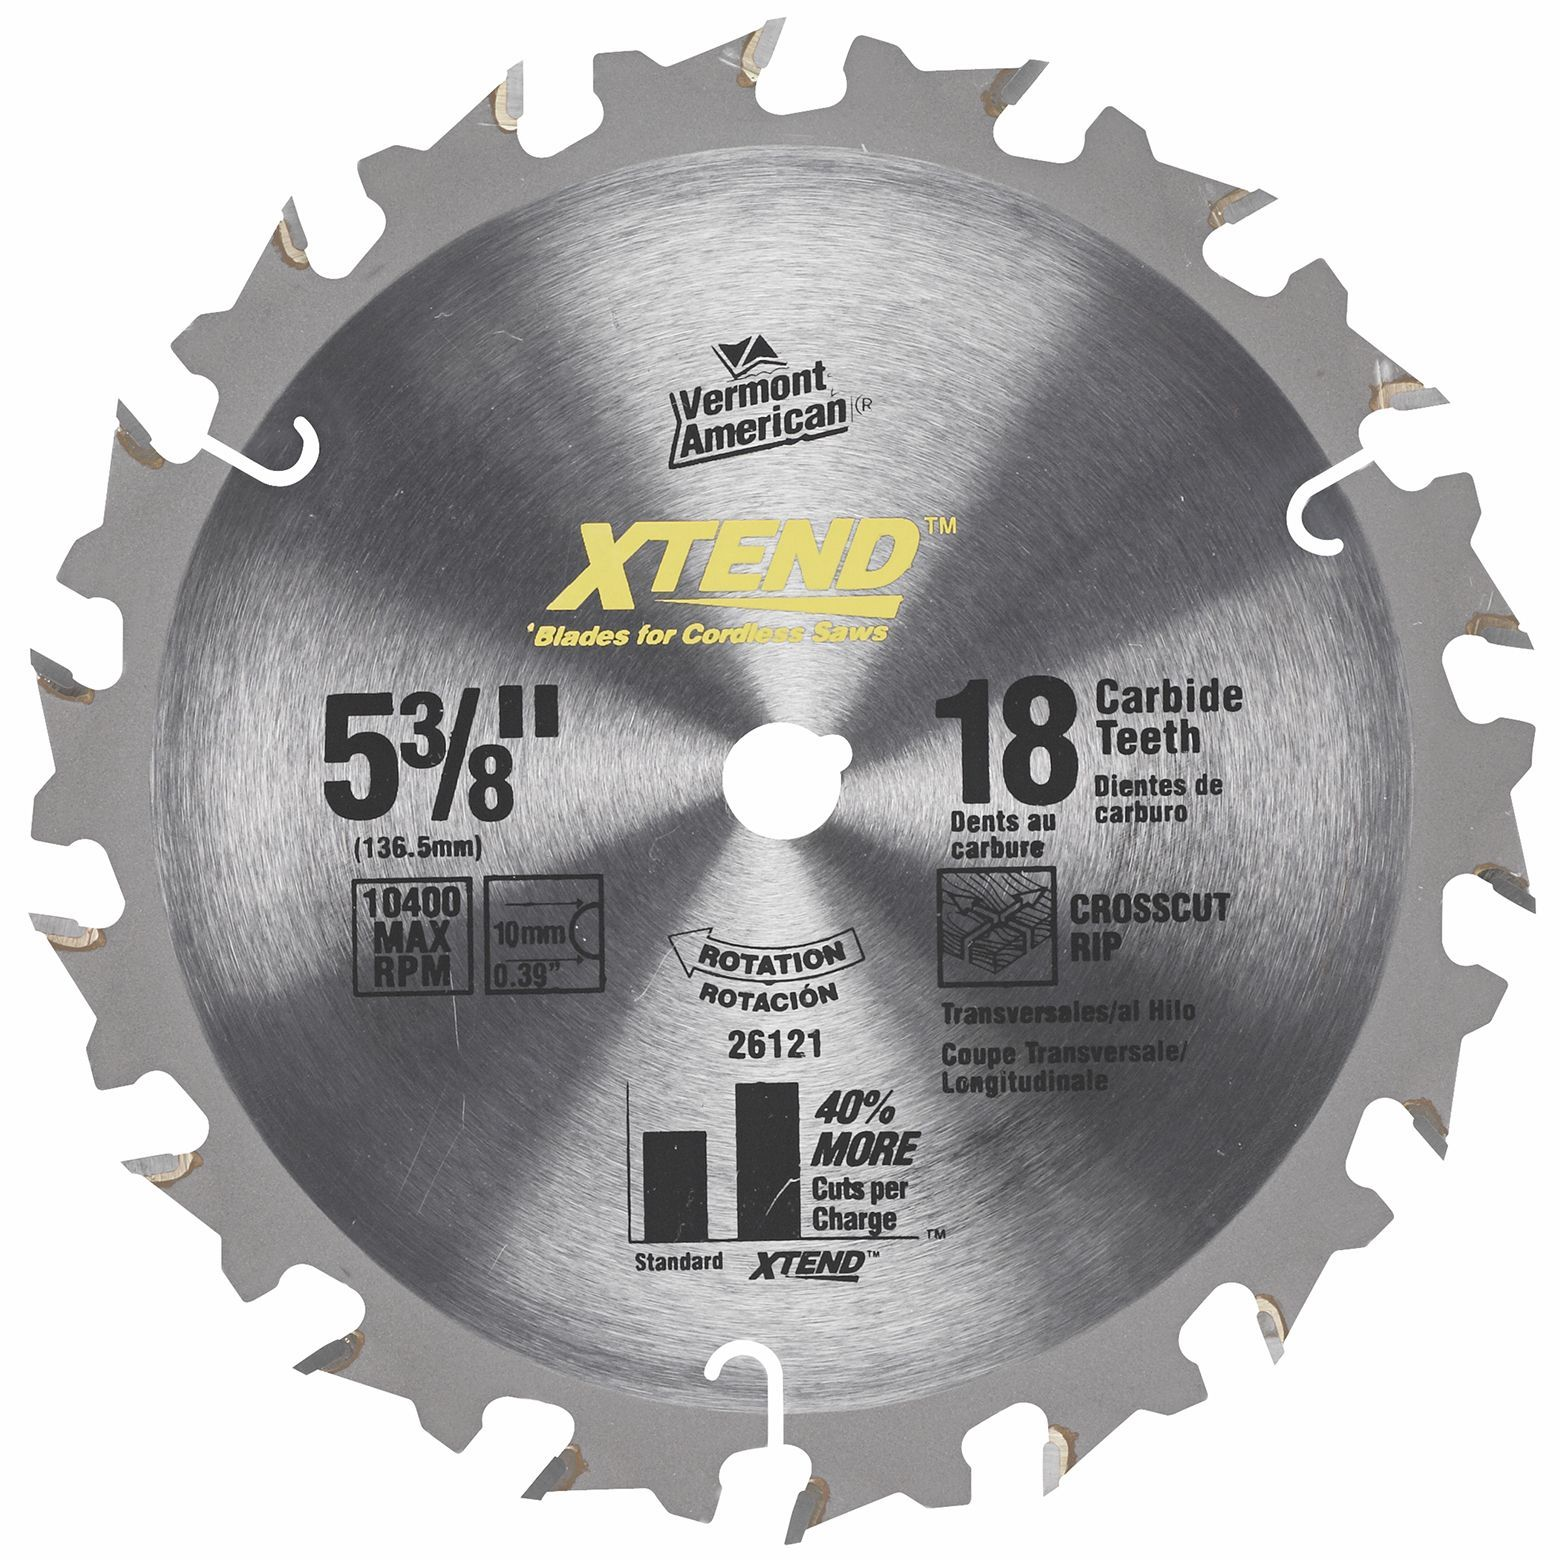 Century Drill And Tool 08236 Cenalloy All Hard Steel Plywood Circular Saw Blade 3 3 8 Inch By 80t Circular Saw Blades Saw Blade Veneers